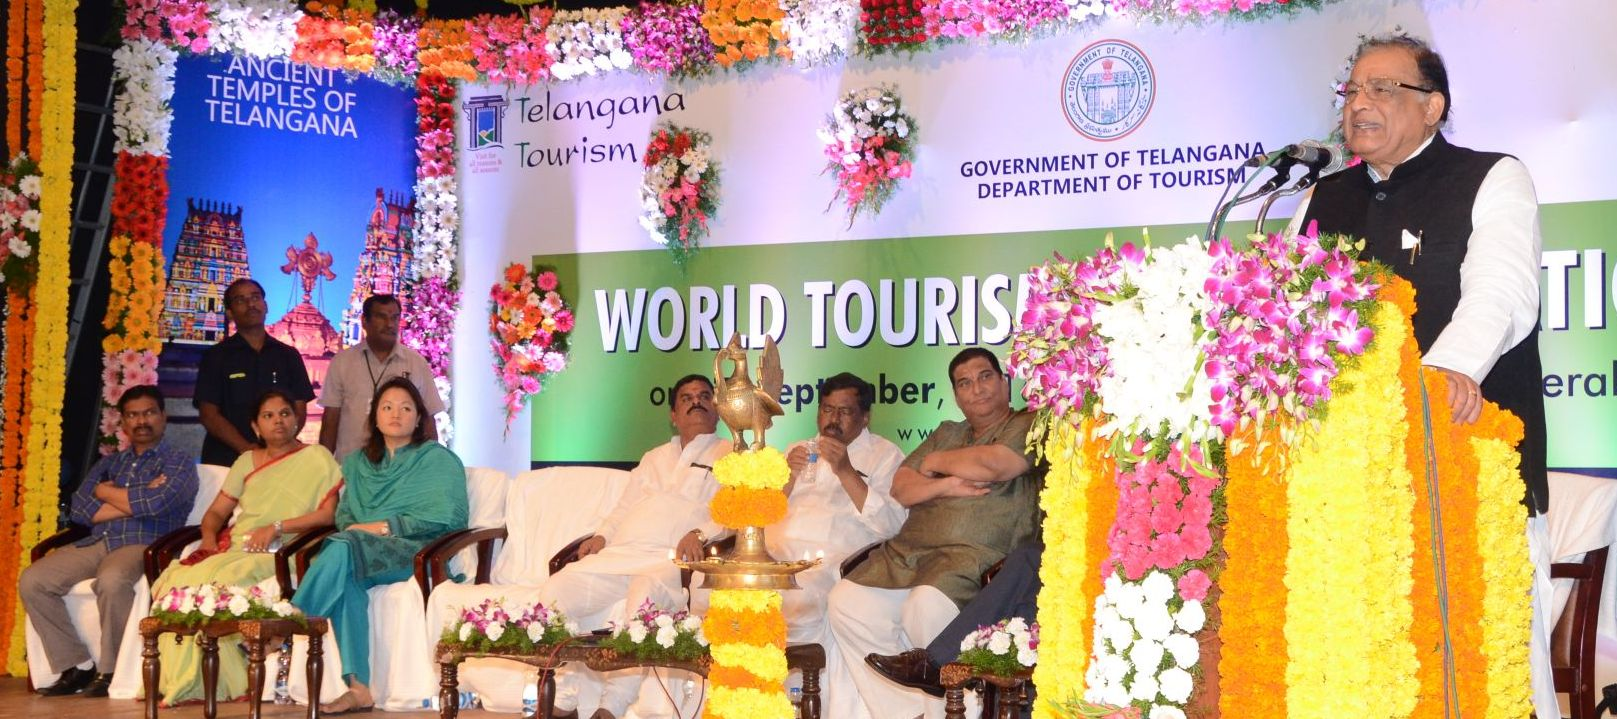 TS Legislative Council Chairman K.Swamy Goud, A. Chandu Lal, Minister For Tourism & Culture, Chairman P. Ramulu, TS TDC, Sunita M Bhagwat, Tourism Commissioner, Christina Z Chongtu , Managing Director TS TDC And Other Officials Participating In The World Tourism Day Celebrations At Ravindra Bharathi On 27-09-2016.